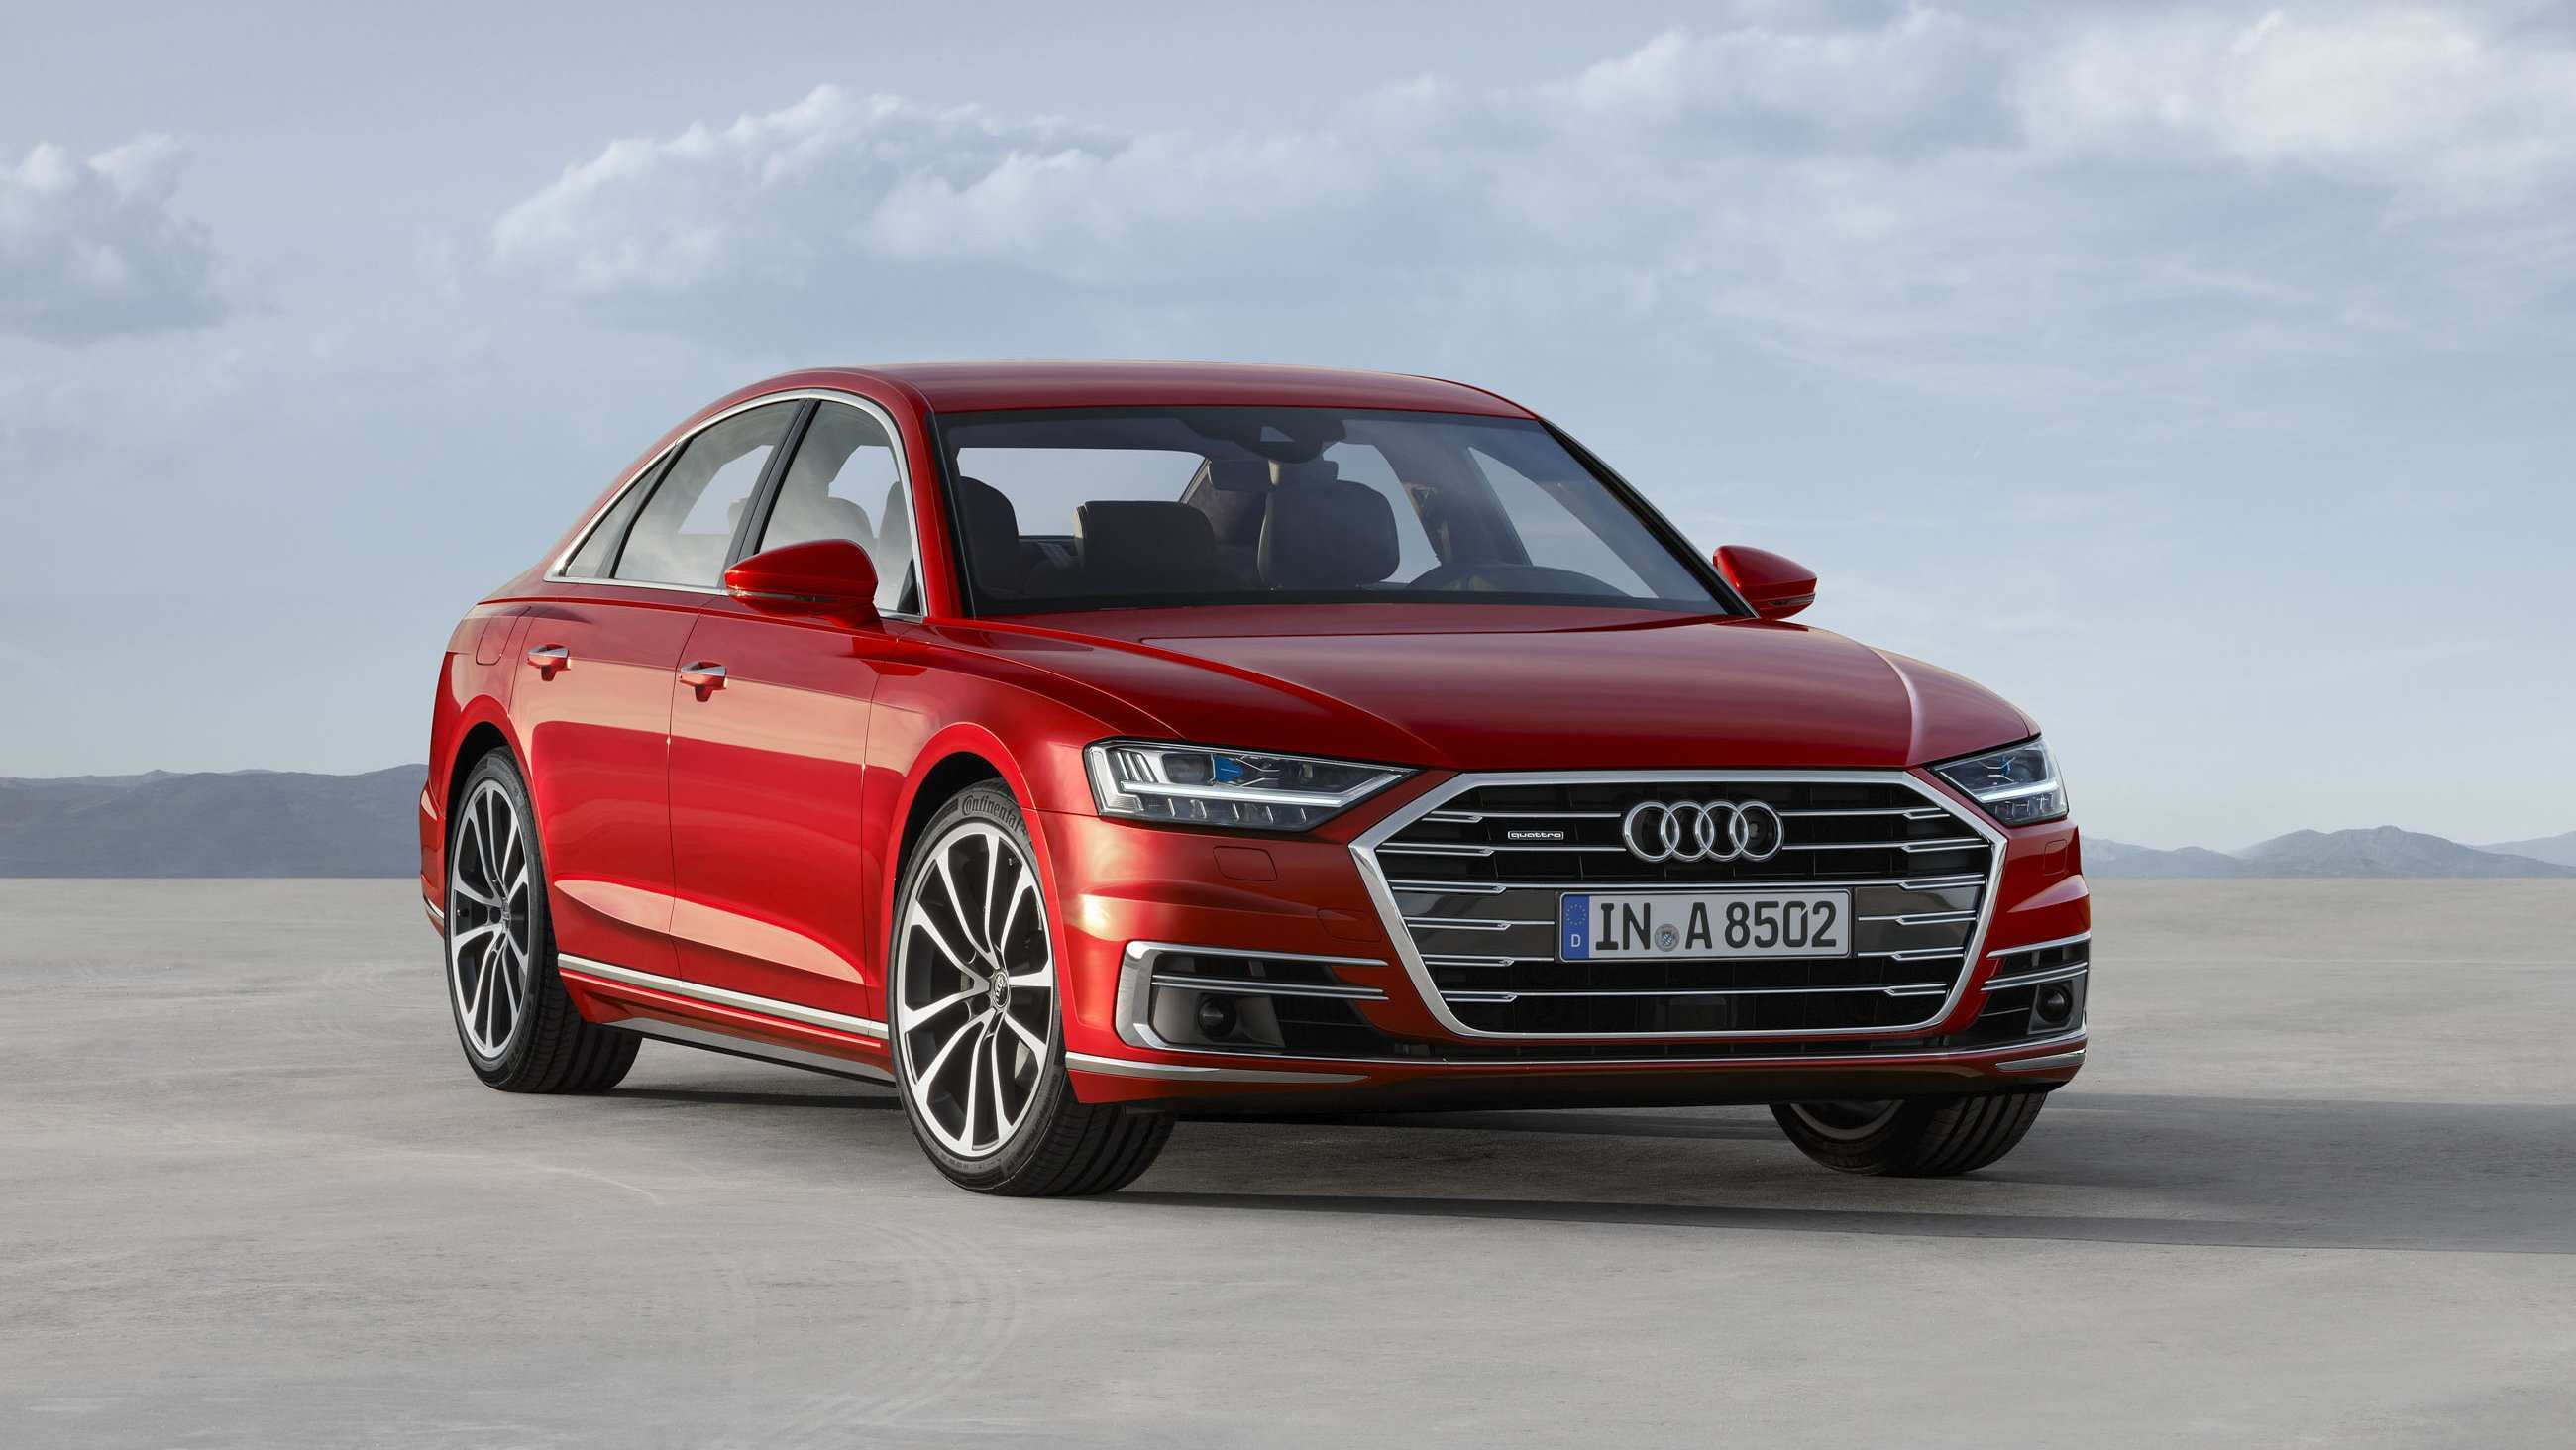 34 New Audi Uno 2020 Speed Test for Audi Uno 2020